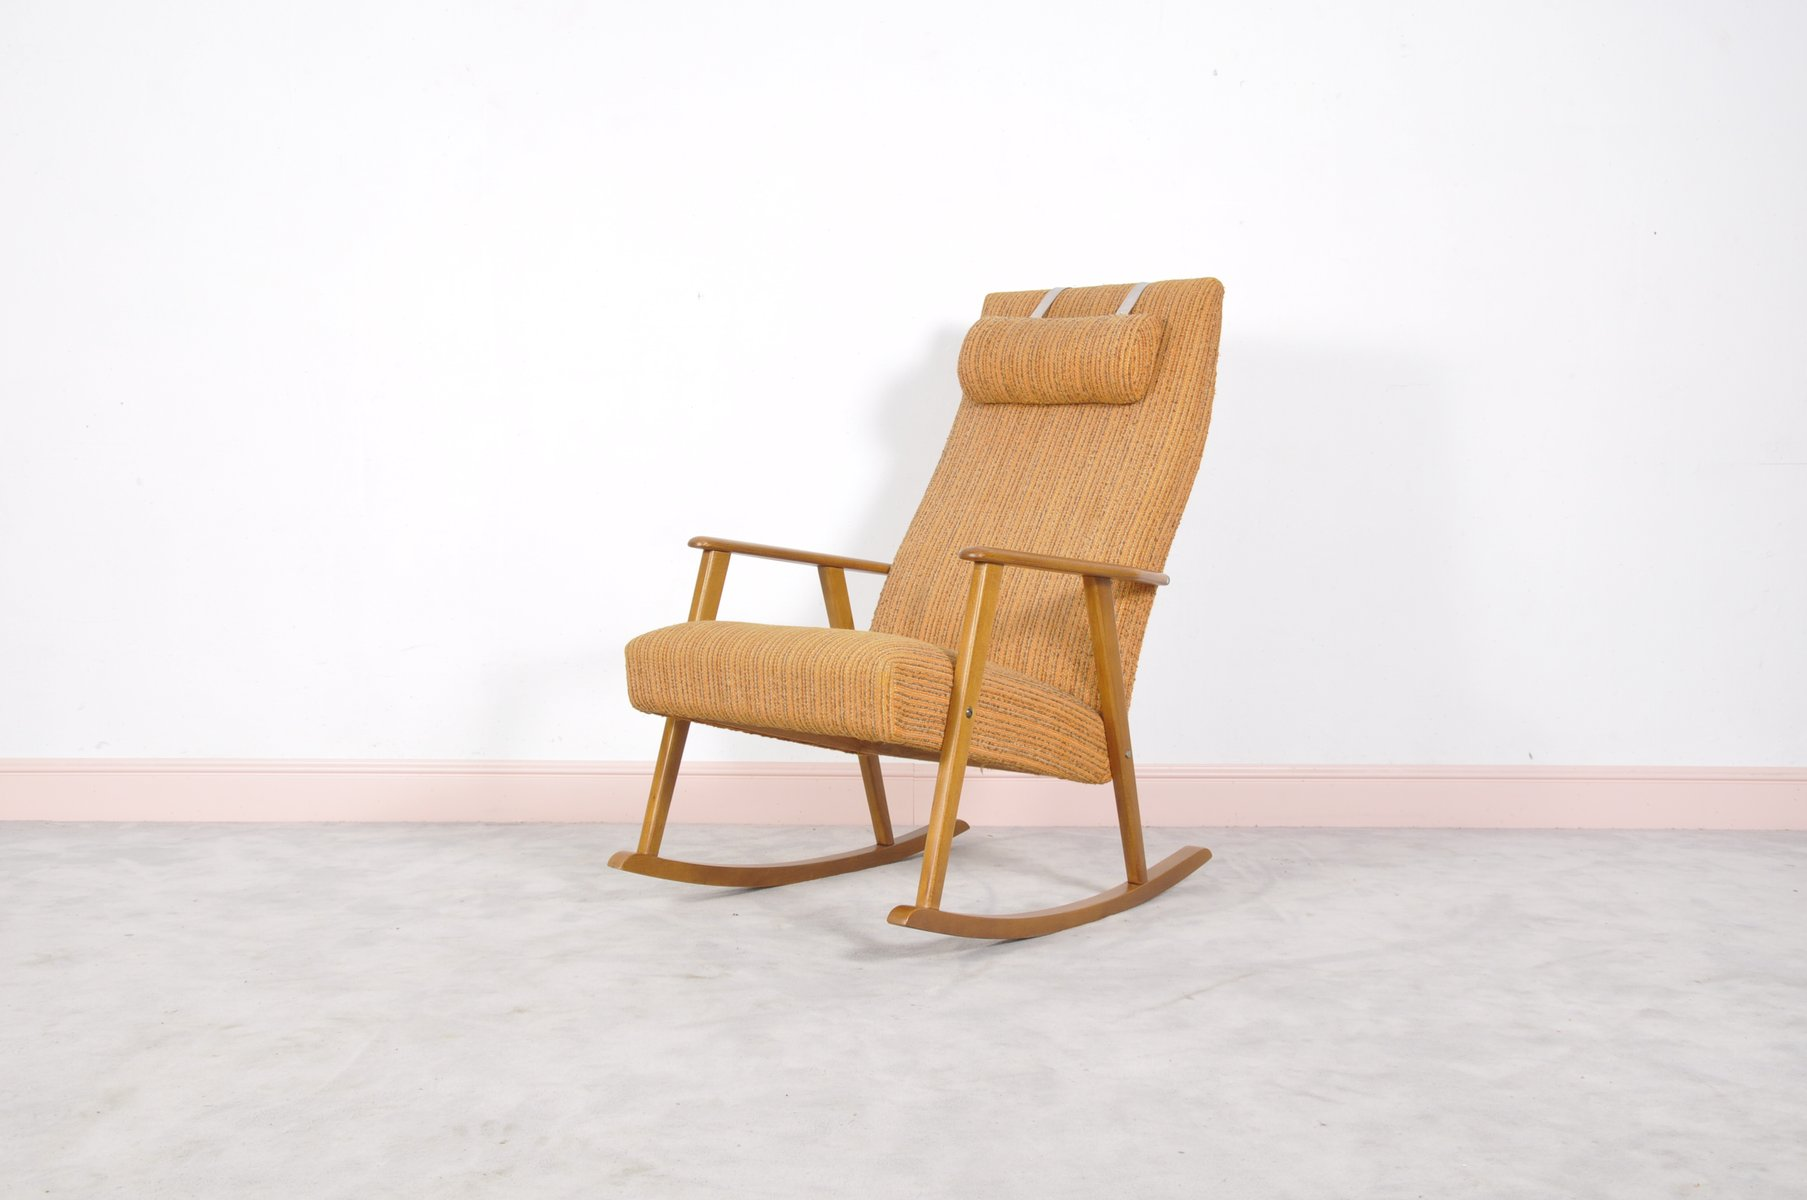 Fantastic Mid Century Modern Swedish Rocking Chair By Johanson 1960S Creativecarmelina Interior Chair Design Creativecarmelinacom